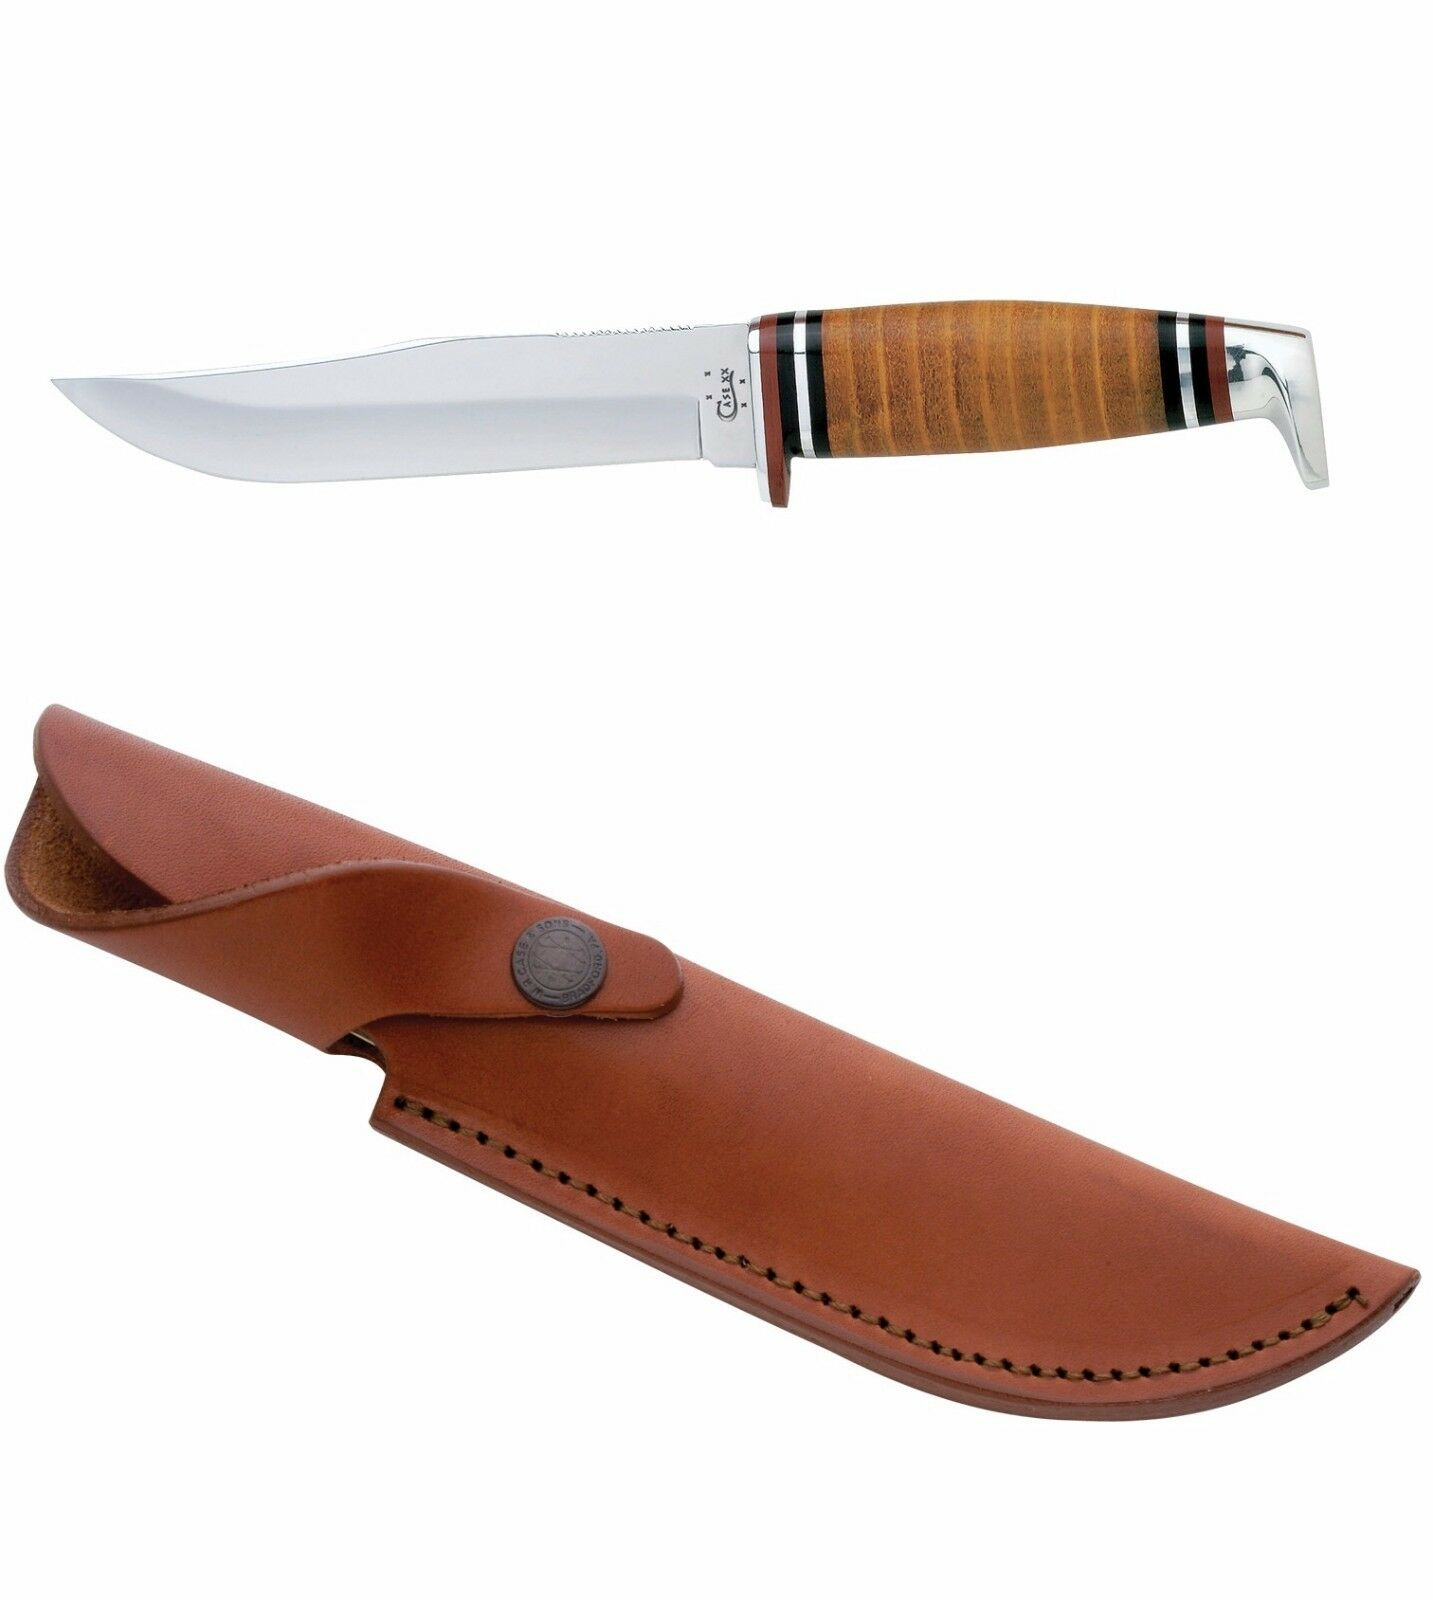 Case Xx 385 Hunting Knife 5 Quot Clip Blade Leather Handle W